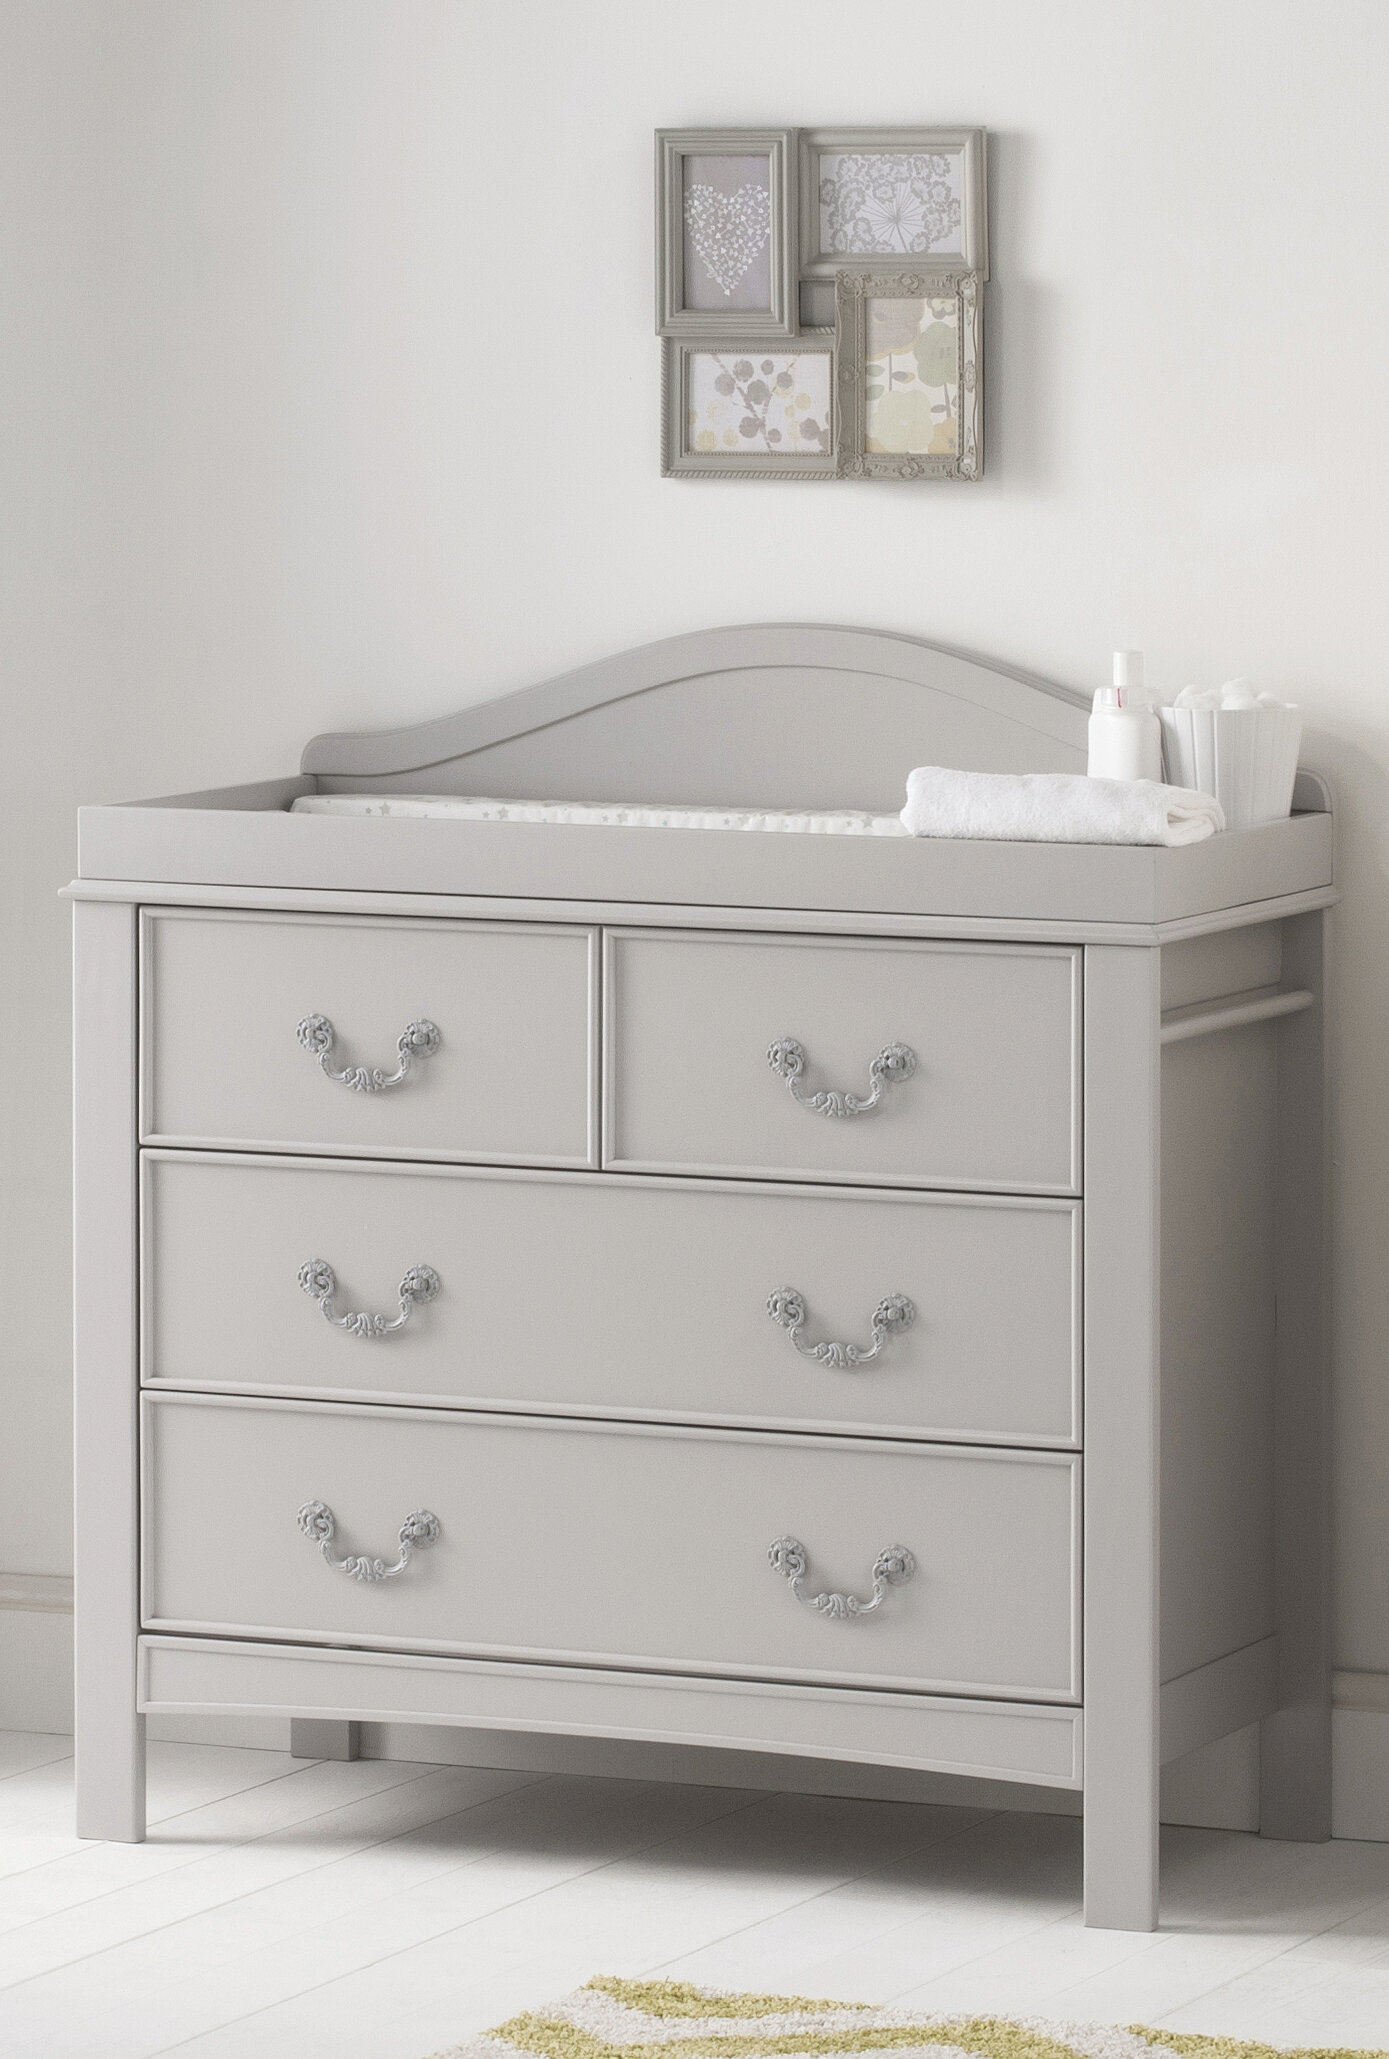 drawer table on dresser grey choose finis your dress studio coma room frique northbrook modena baby crib serta view changing mod rustic and